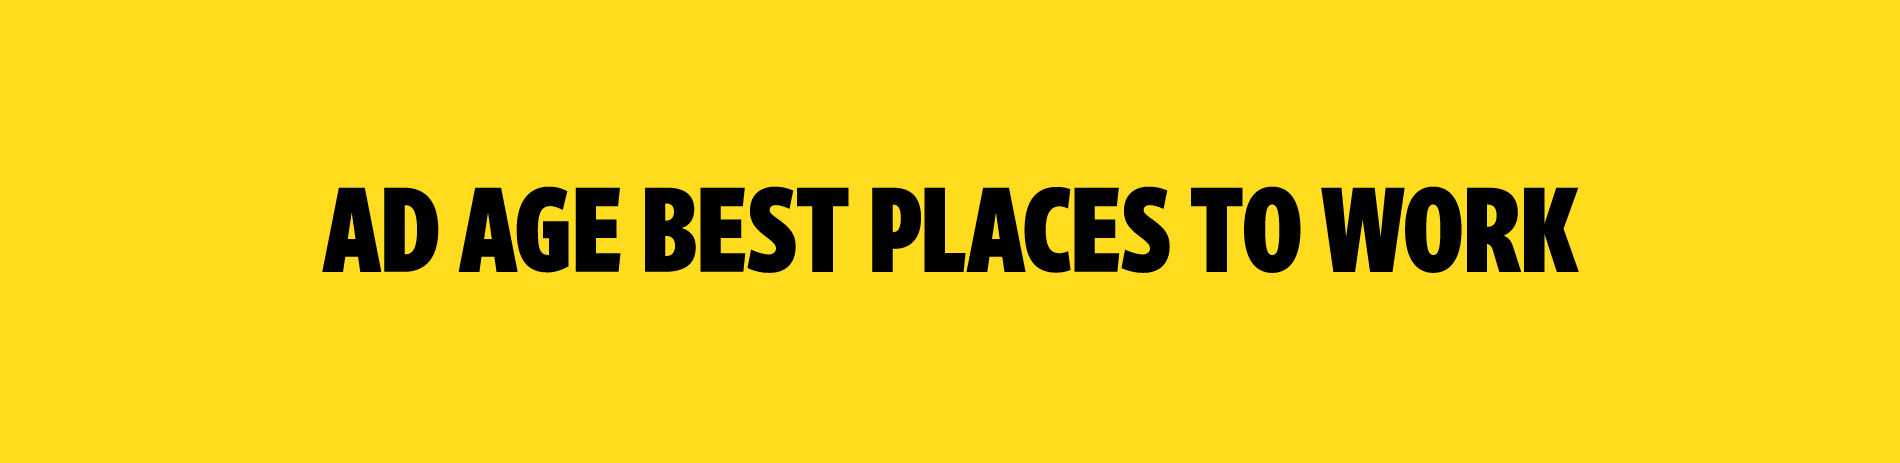 Best Places To Work 2020.Ad Age Awards